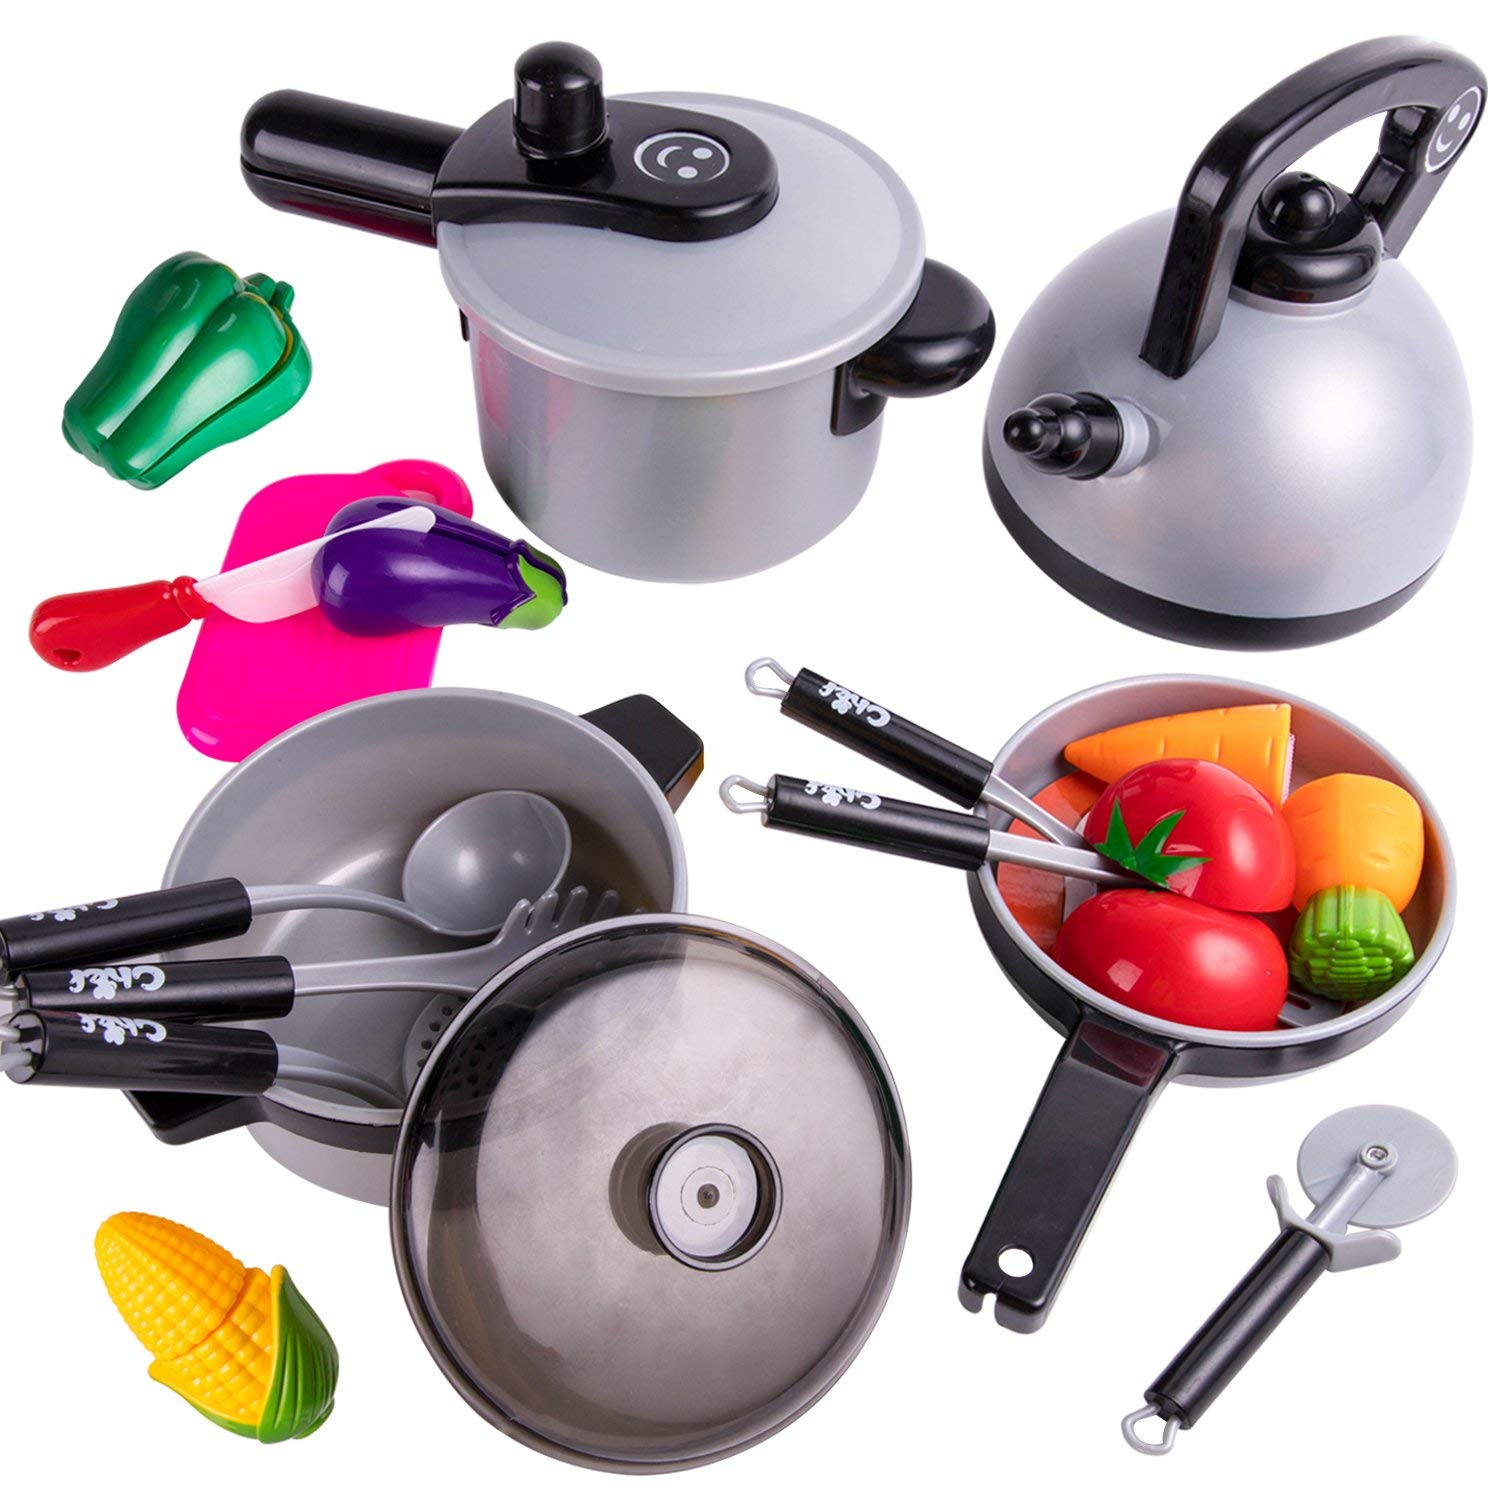 Pretend Play Kitchen Cooking Set, Pots and Pans, Kids Cookware Playset, Cutting Vegetables, Knife, Development Utensils Toys for Ages 2, 3, 4, 5 Year Olds Kids, Baby, Girls, Boys, Toddlers